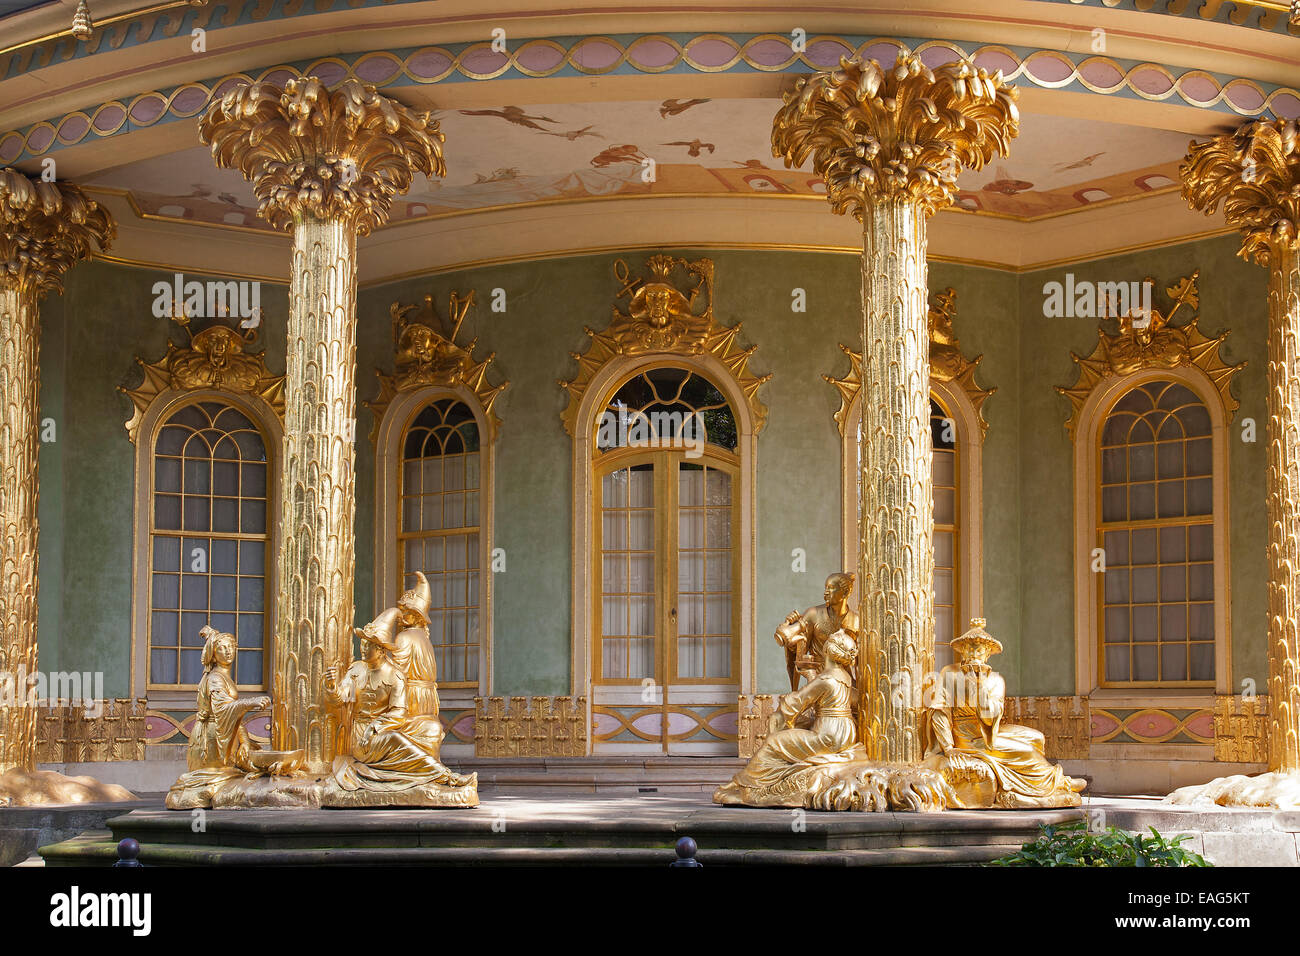 Chinese House / Chinesisches Haus, garden pavilion in the Chinoiserie style in Sanssouci Park in Potsdam, Brandenburg, - Stock Image